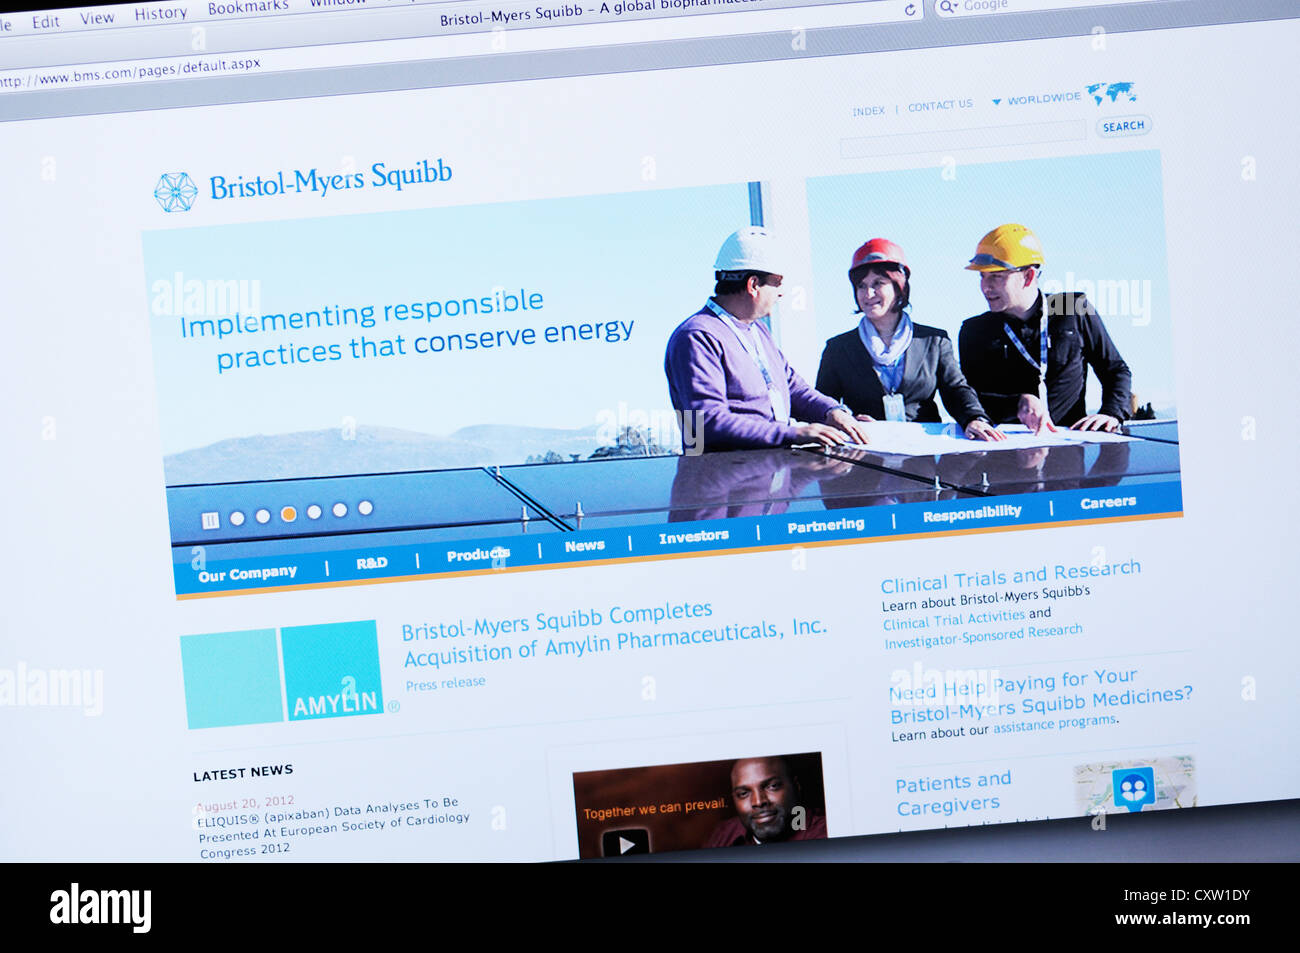 Bristol-Myers Squibb website - global biopharmaceutical company - Stock Image